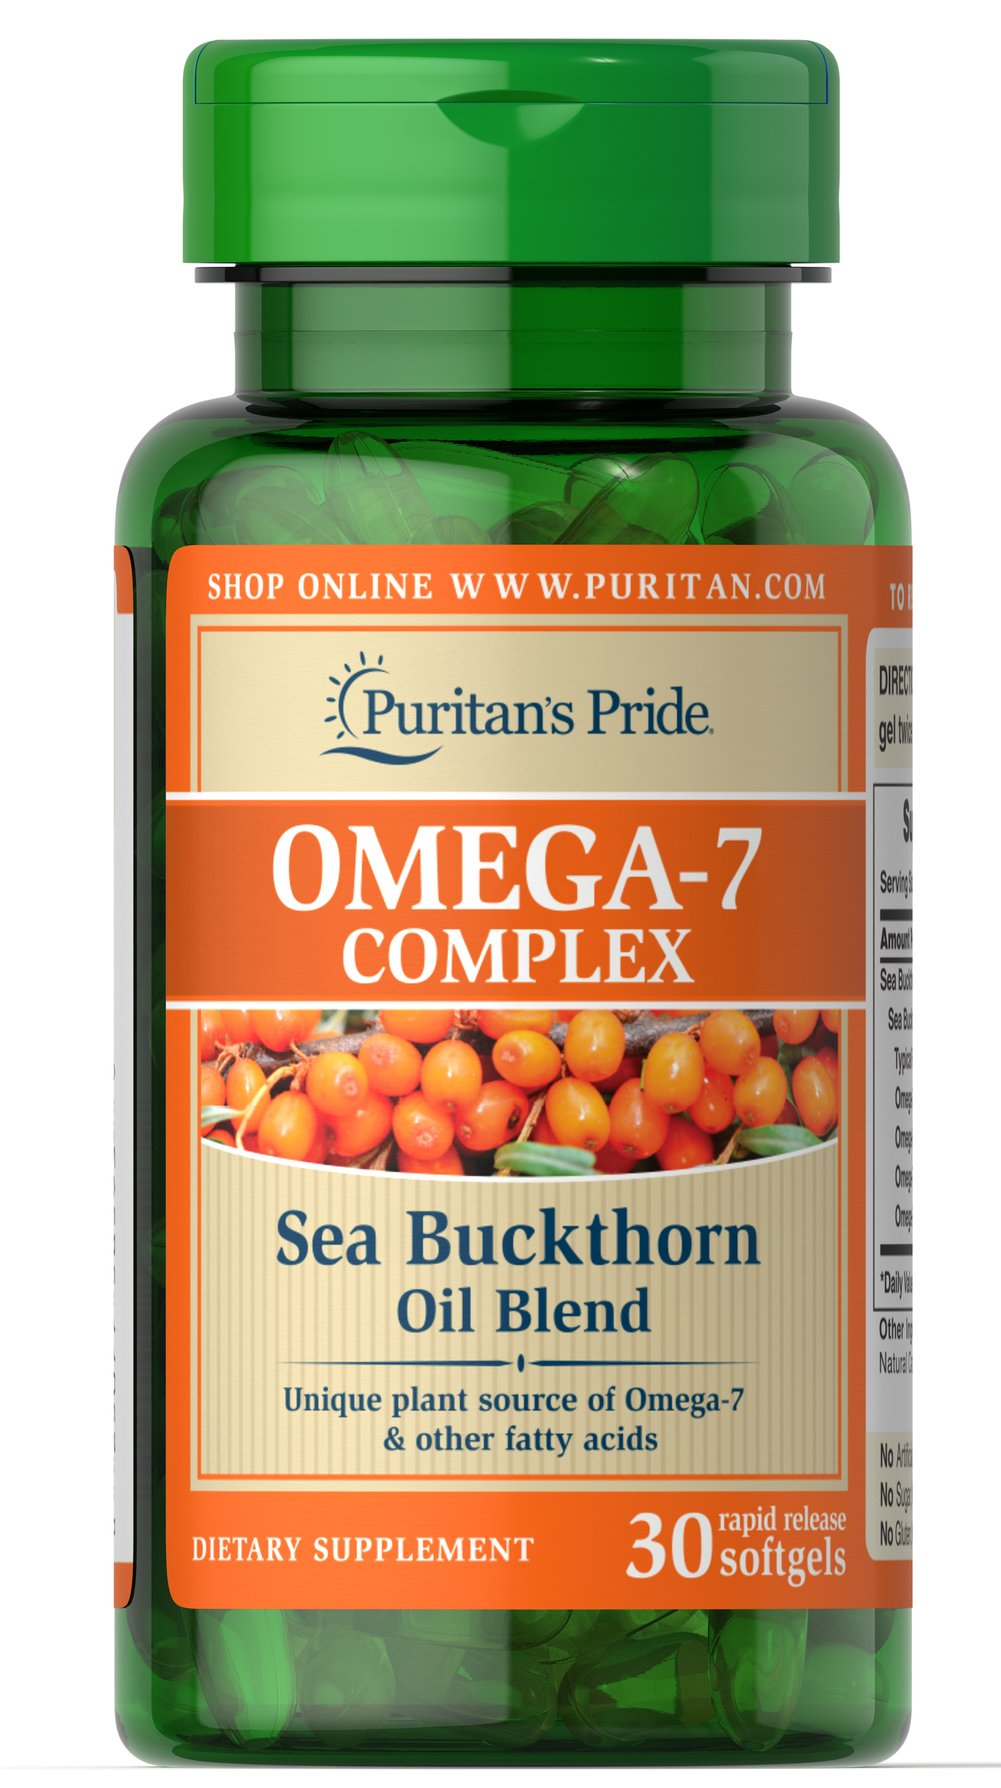 Omega-7 Complex Sea Buckthorn Oil Blend